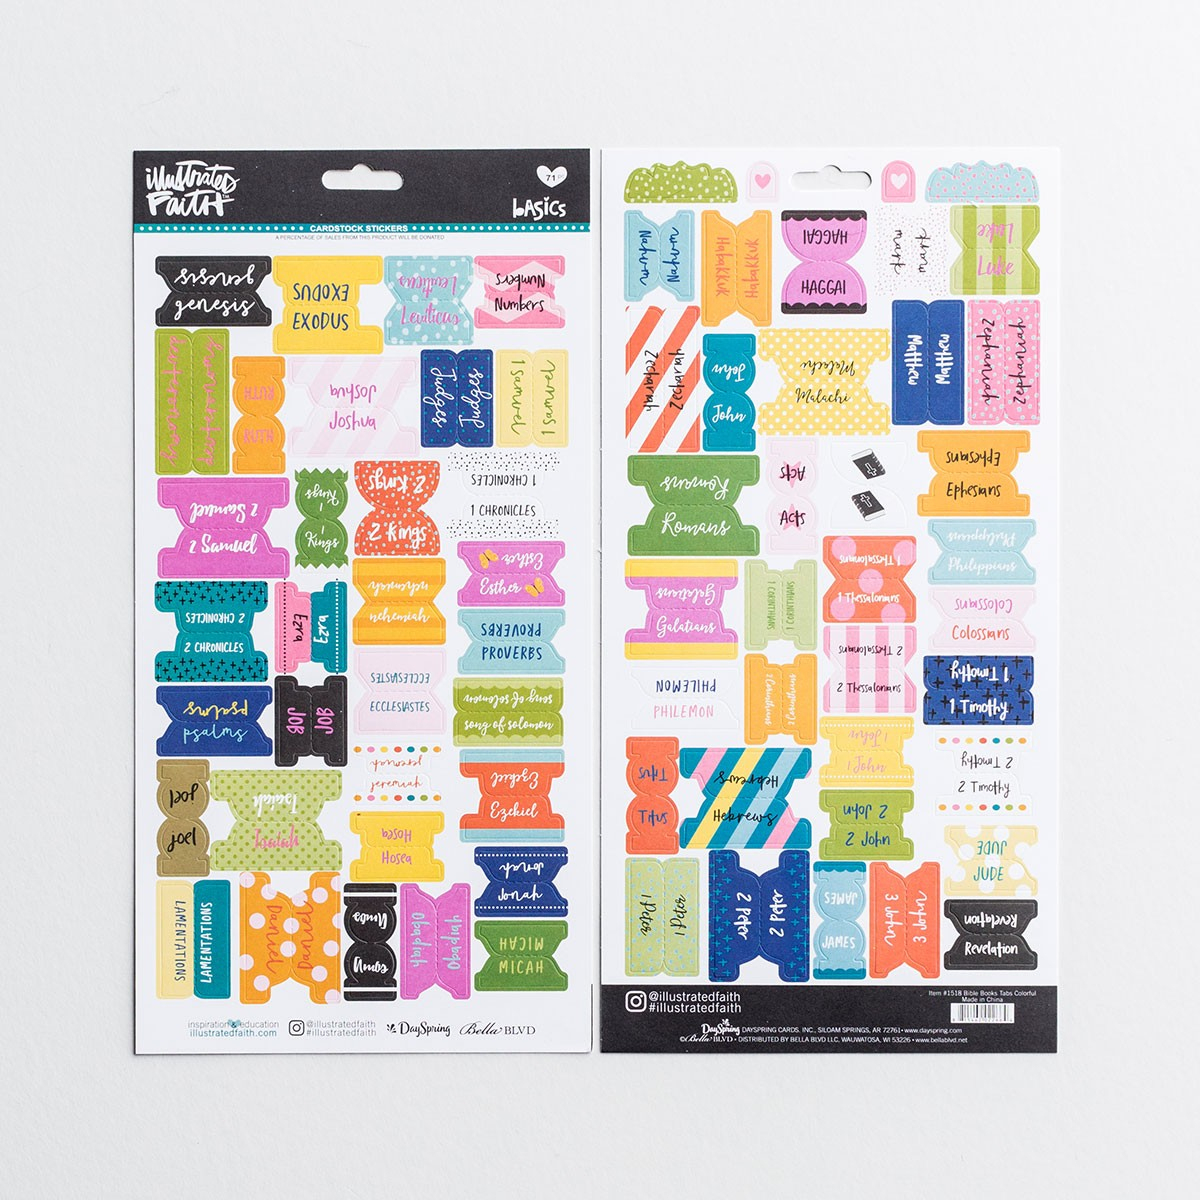 Illustrated Faith - Books Of The Bible Tabs, Colorful   Dayspring - Free Printable Bible Tabs